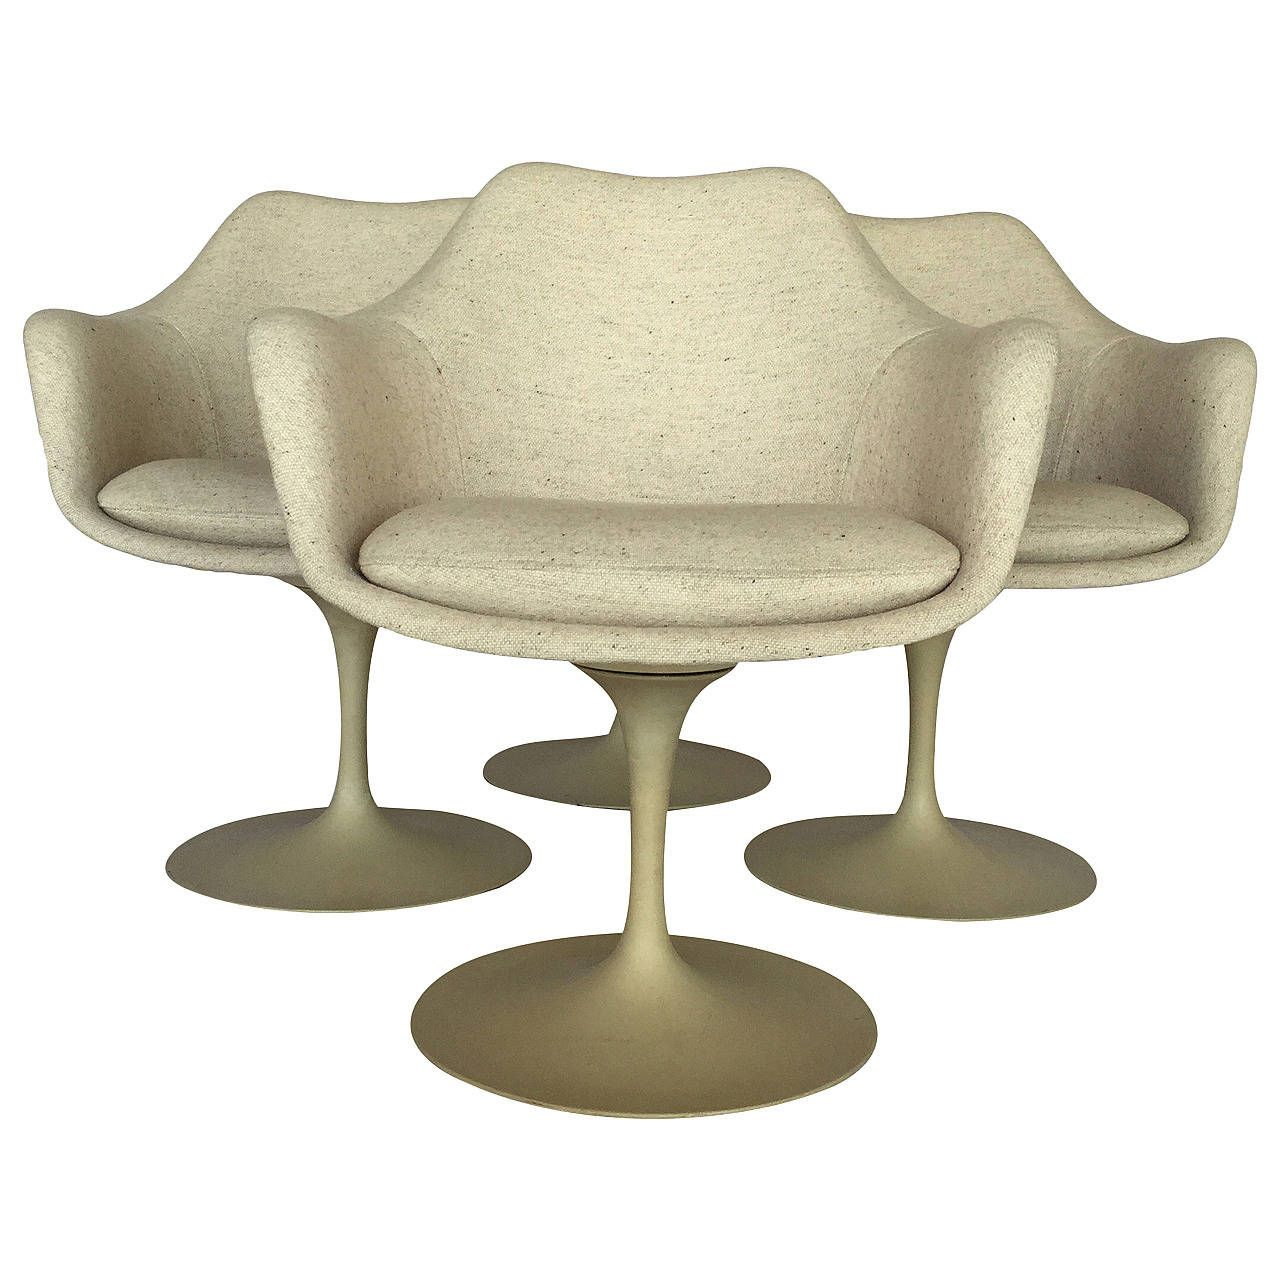 Set Of Four Tulip Chairs By Eero Saarinen For Knoll